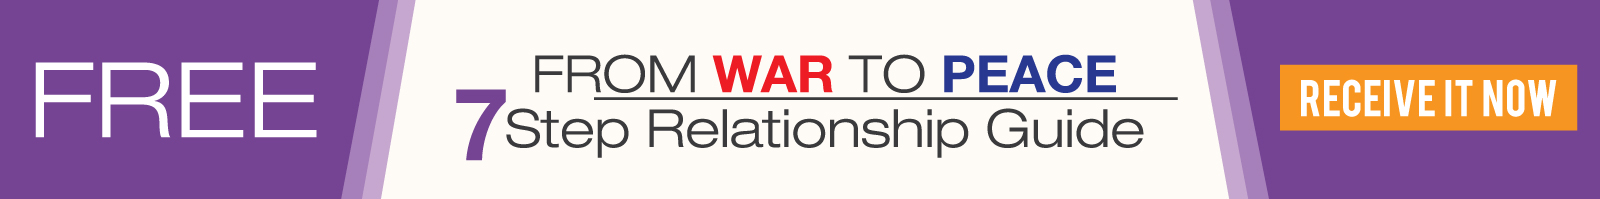 Image shows free war to peace relationship guide, click button receive it now